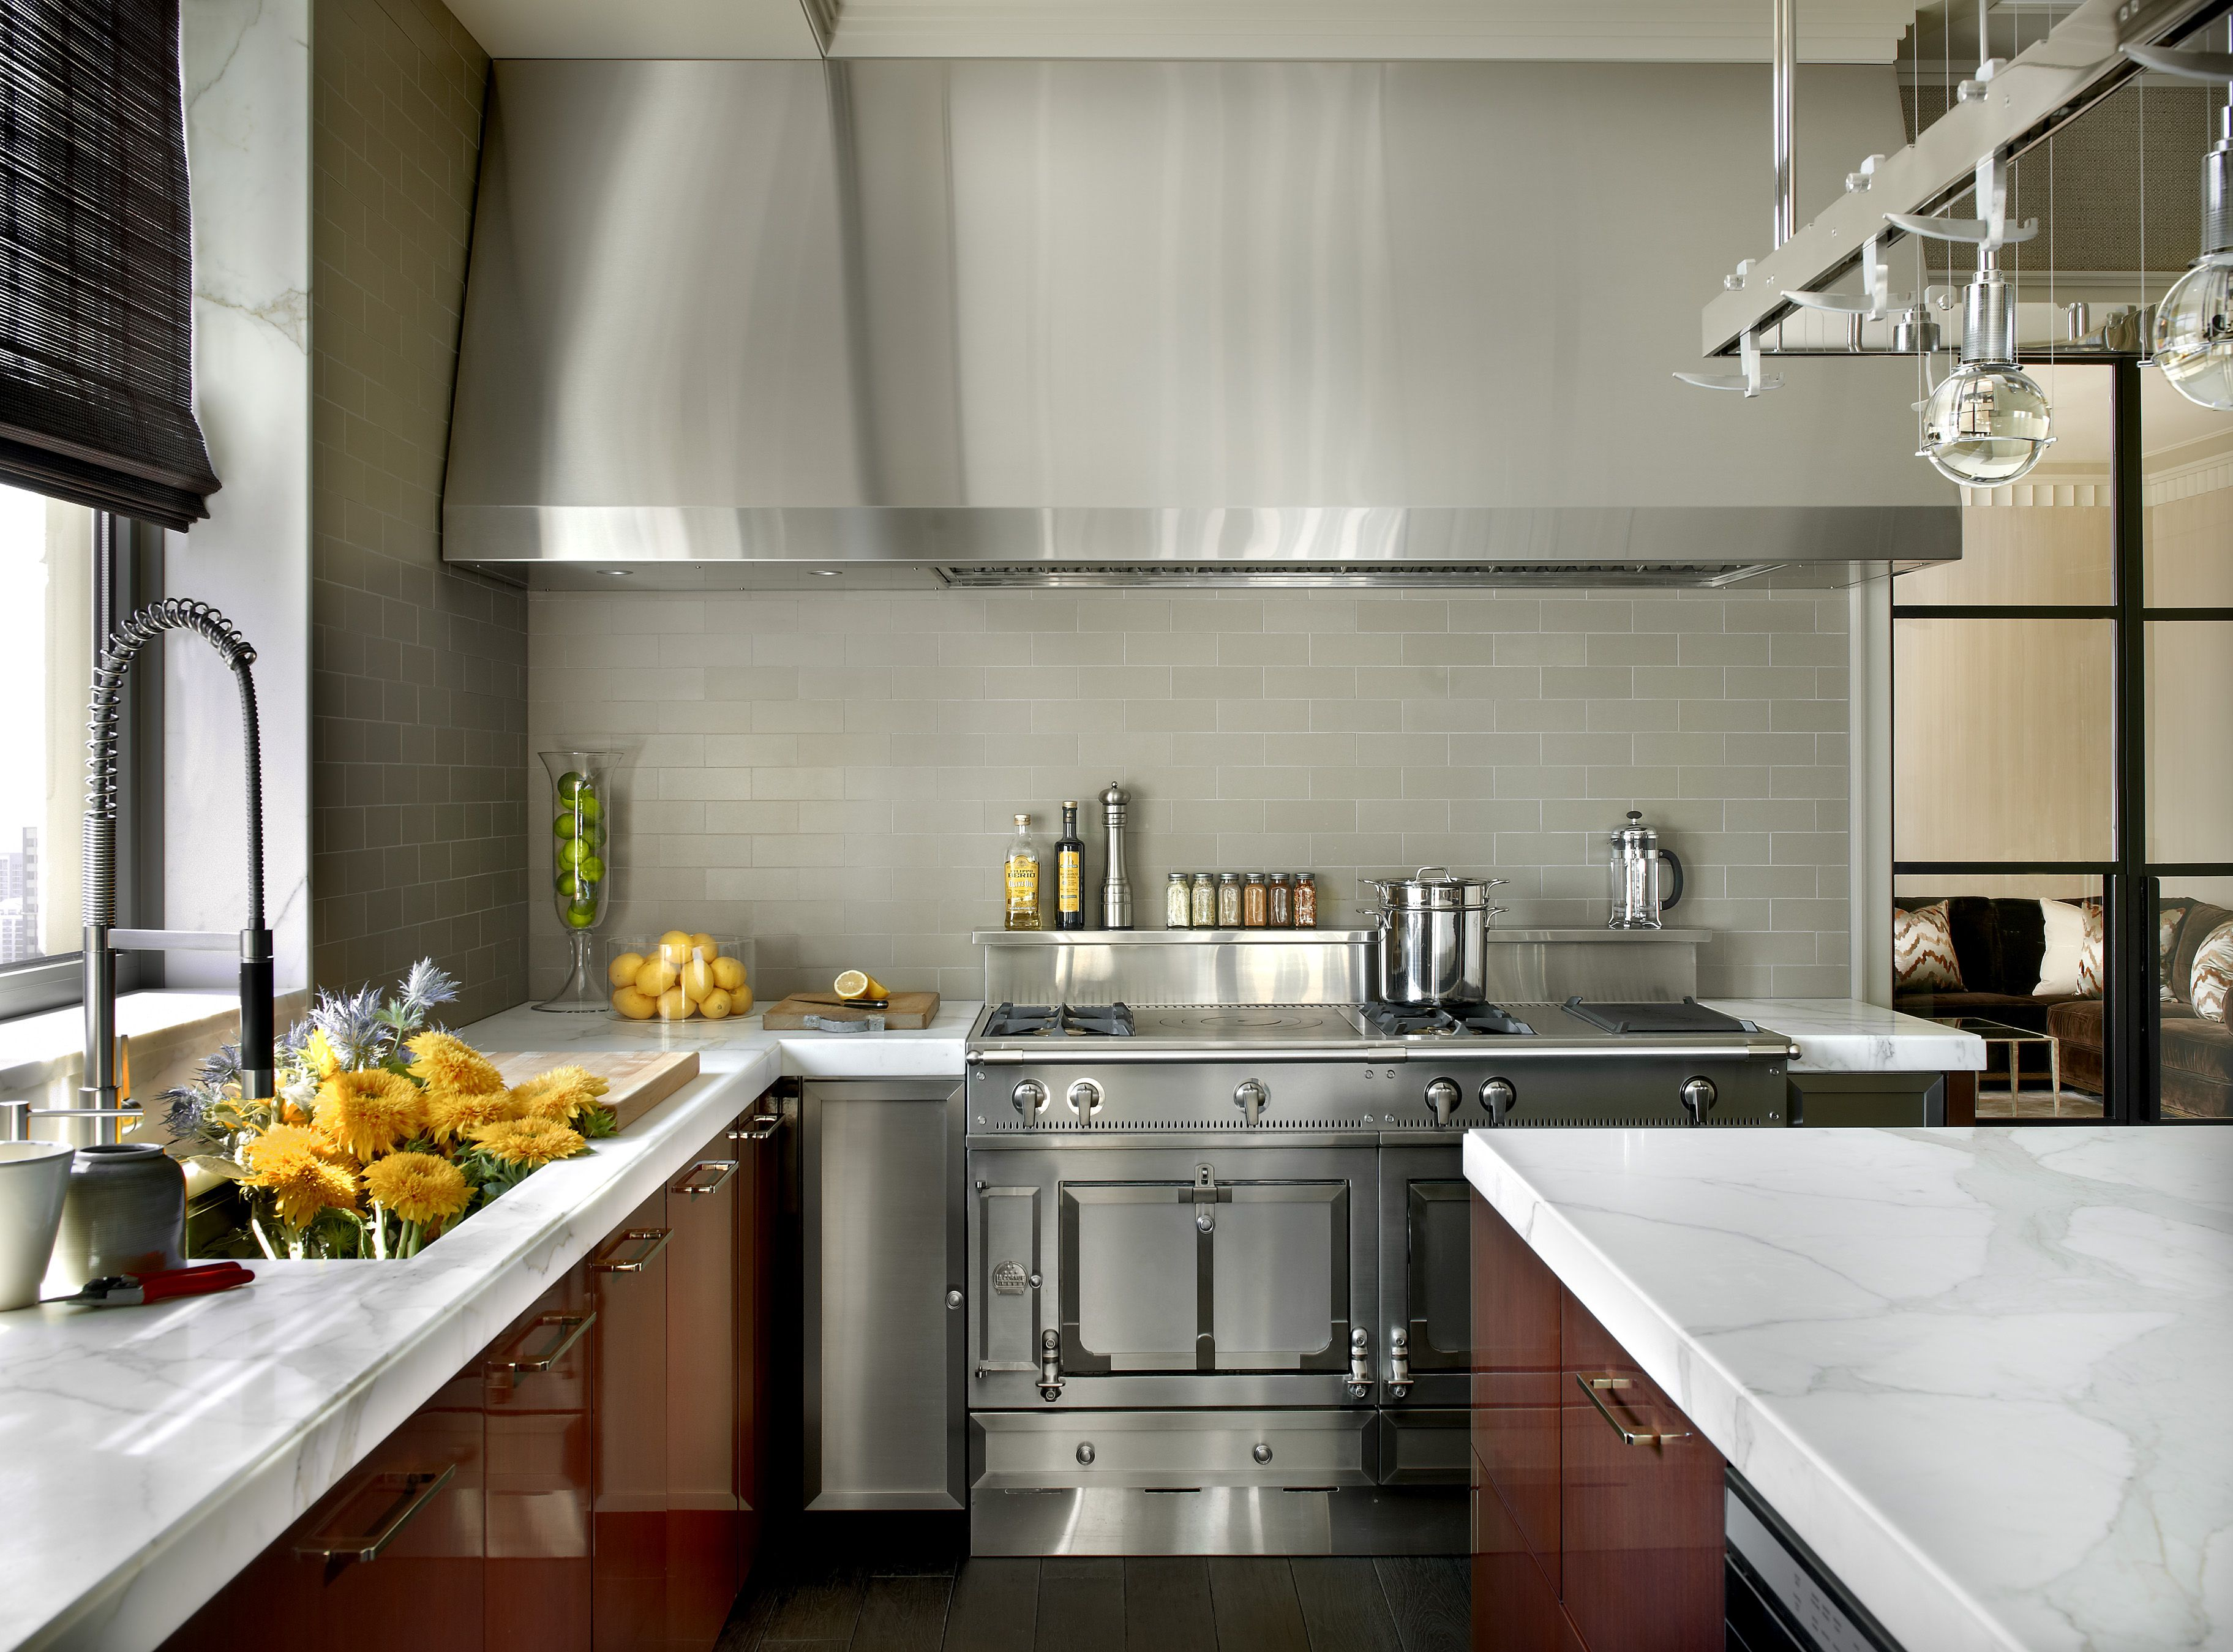 You Donu0027t Have To Be A Top Chef To Have A Fabulous Kitchen. These Designs  Range From Professional Chef Status To